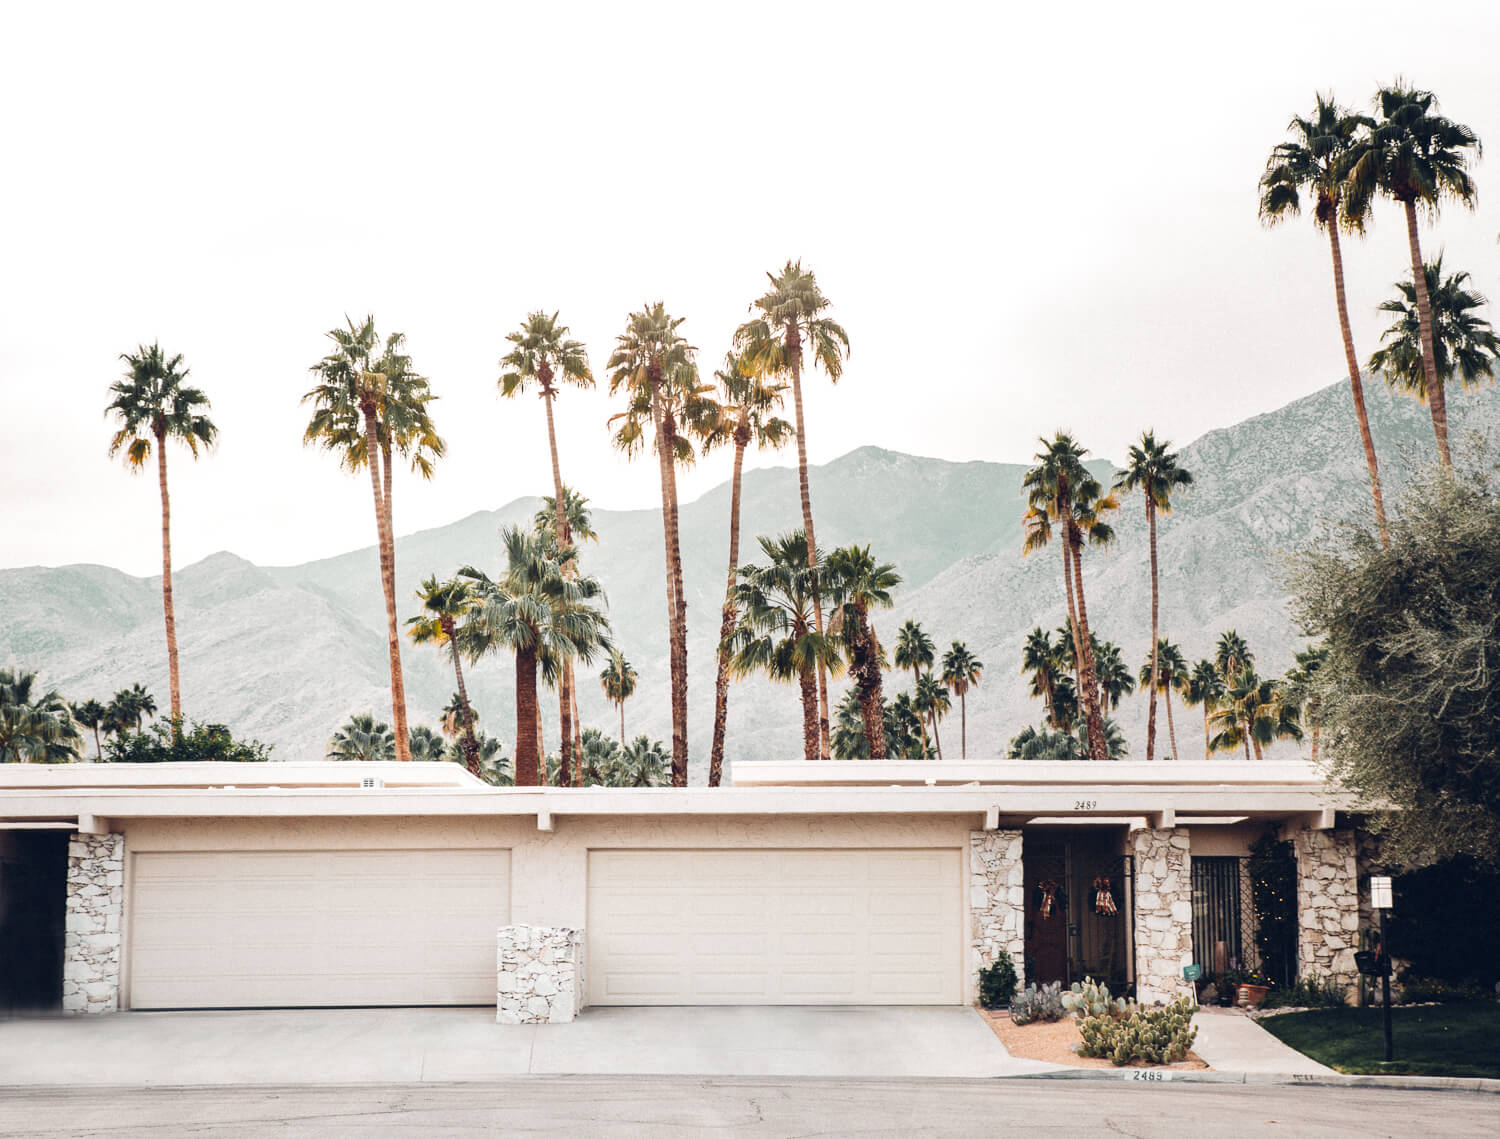 From colorful doors, a $4.95 bottomless champagne brunch and the city's most instagrammable locations, here are 15 local gems you must visit during your next Palm Springs getaway.